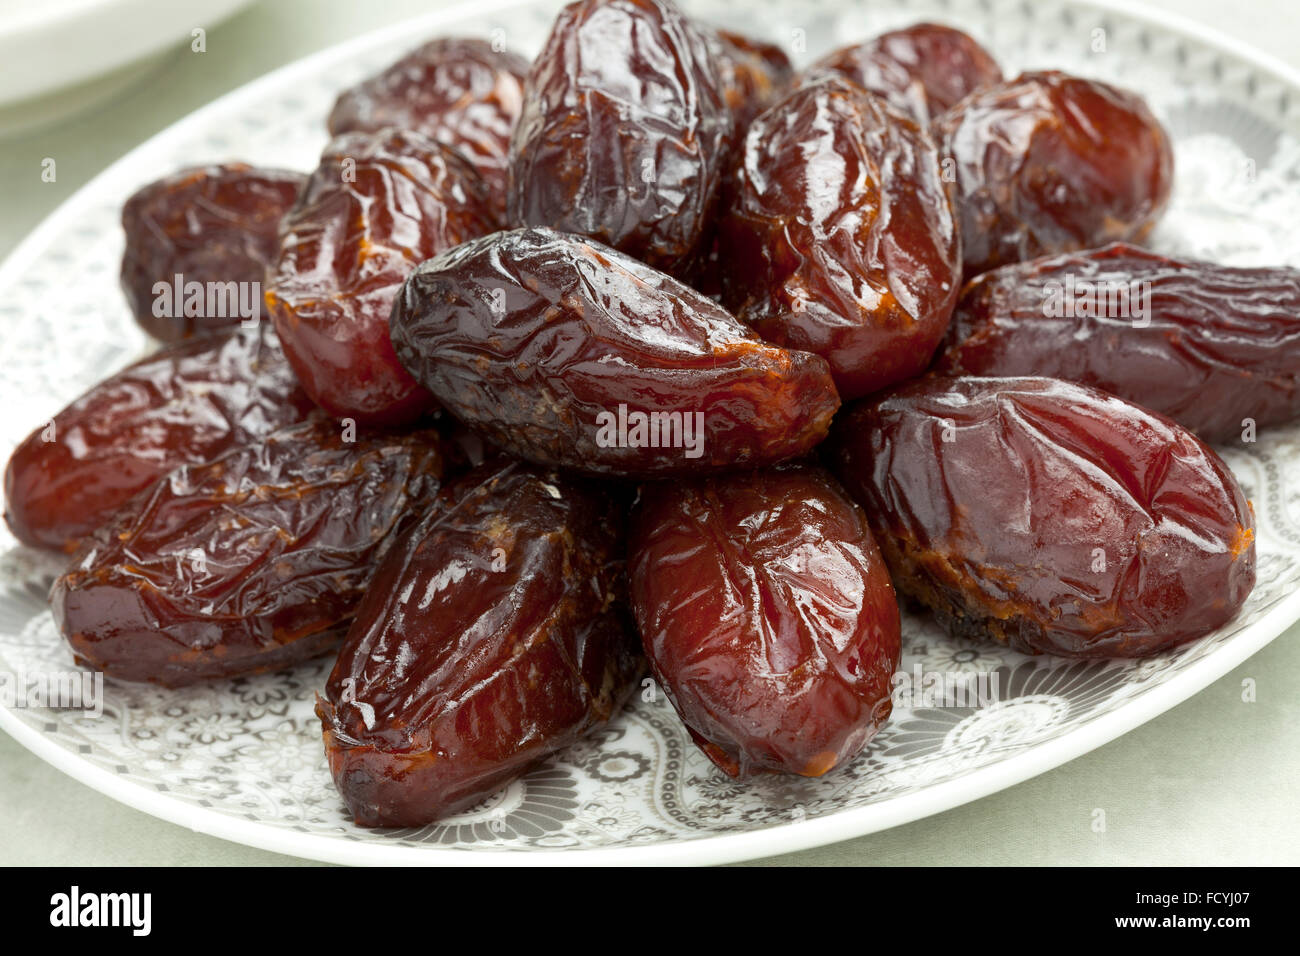 Dish with preserved ripe Medjool dates for festive occasions - Stock Image